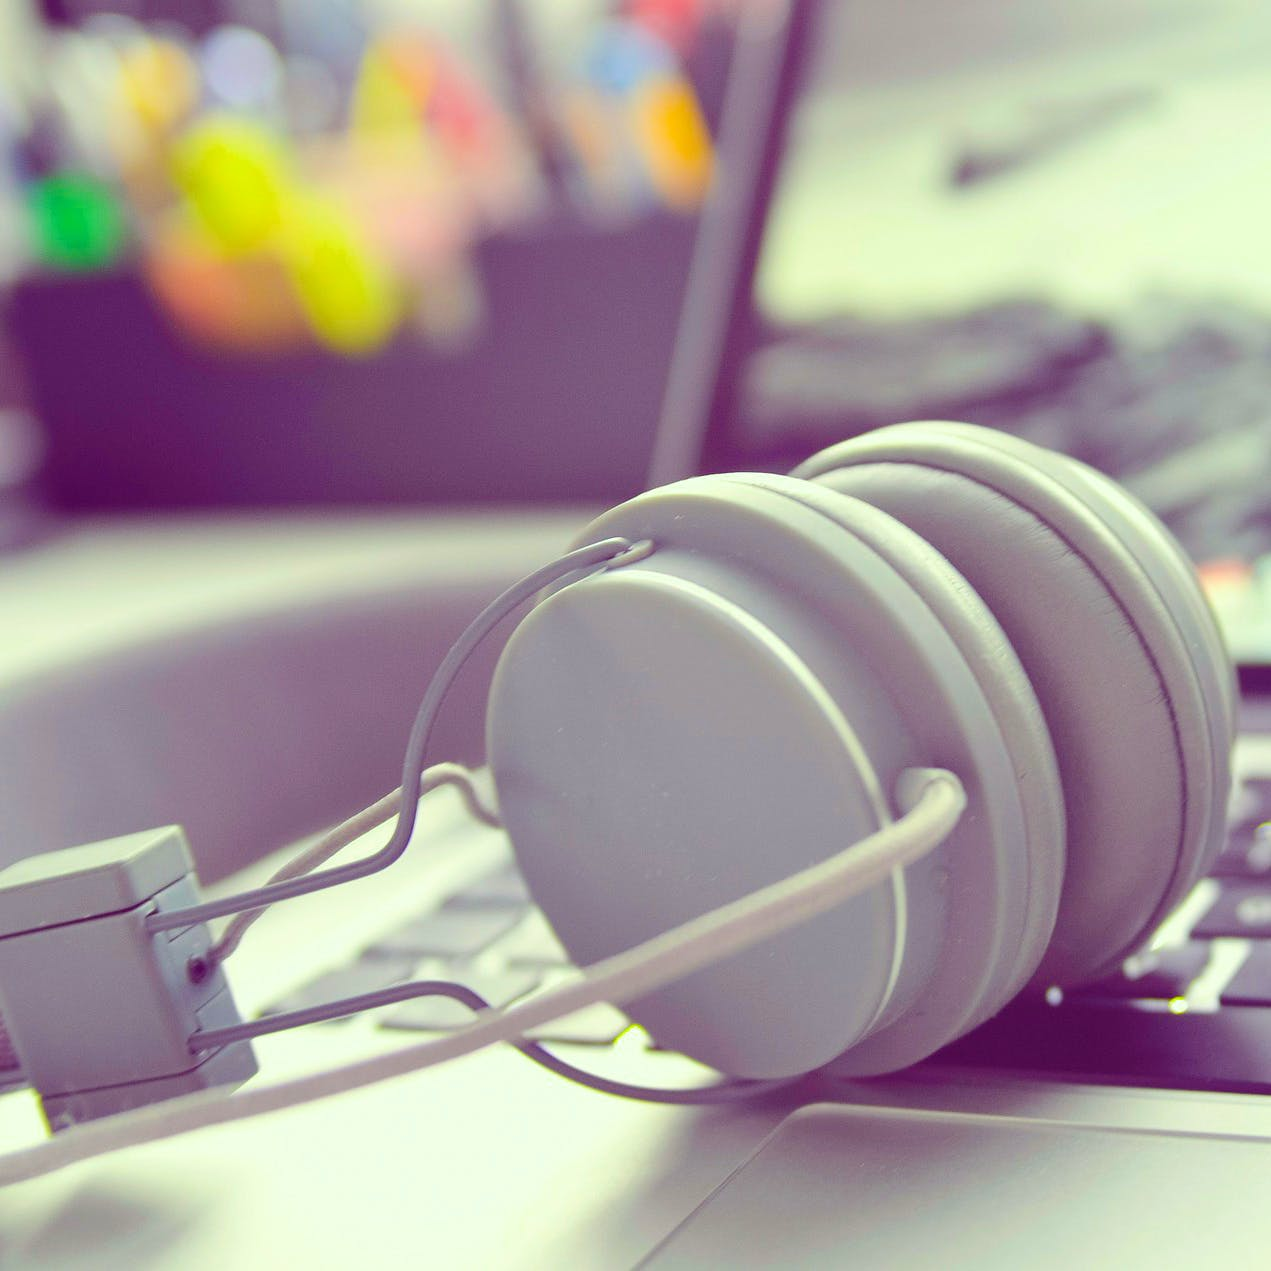 Headphones,Gadget,Audio equipment,Electronic device,Technology,Headset,Material property,Ear